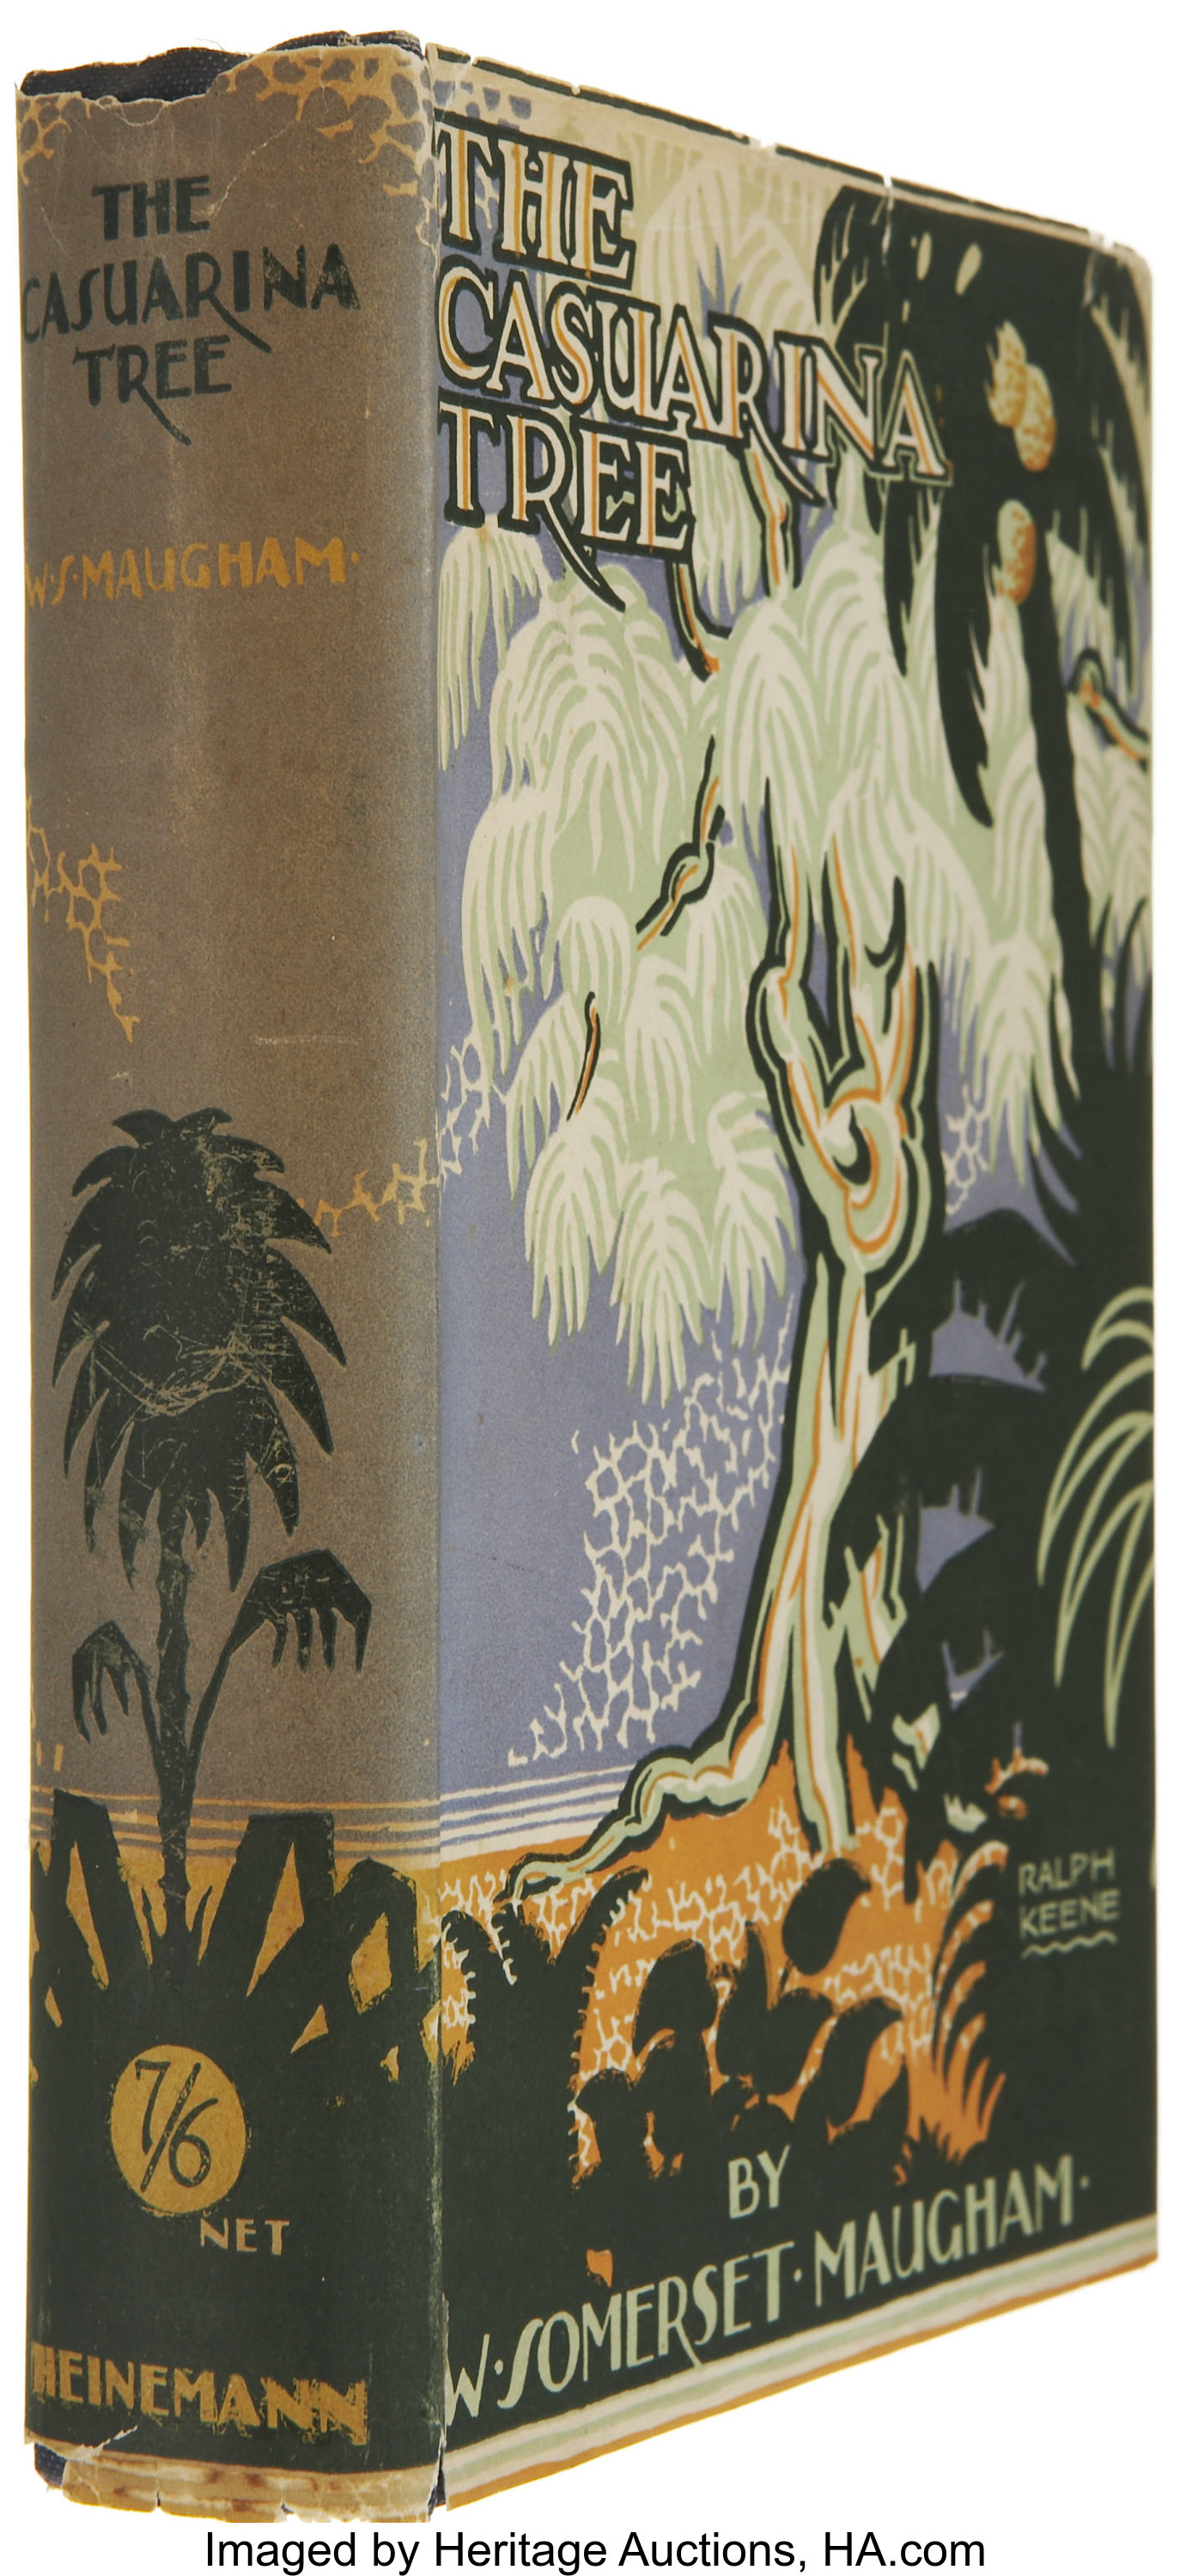 W Somerset Maugham The Casuarina Tree London William Heinemann Lot 37417 Heritage Auctions